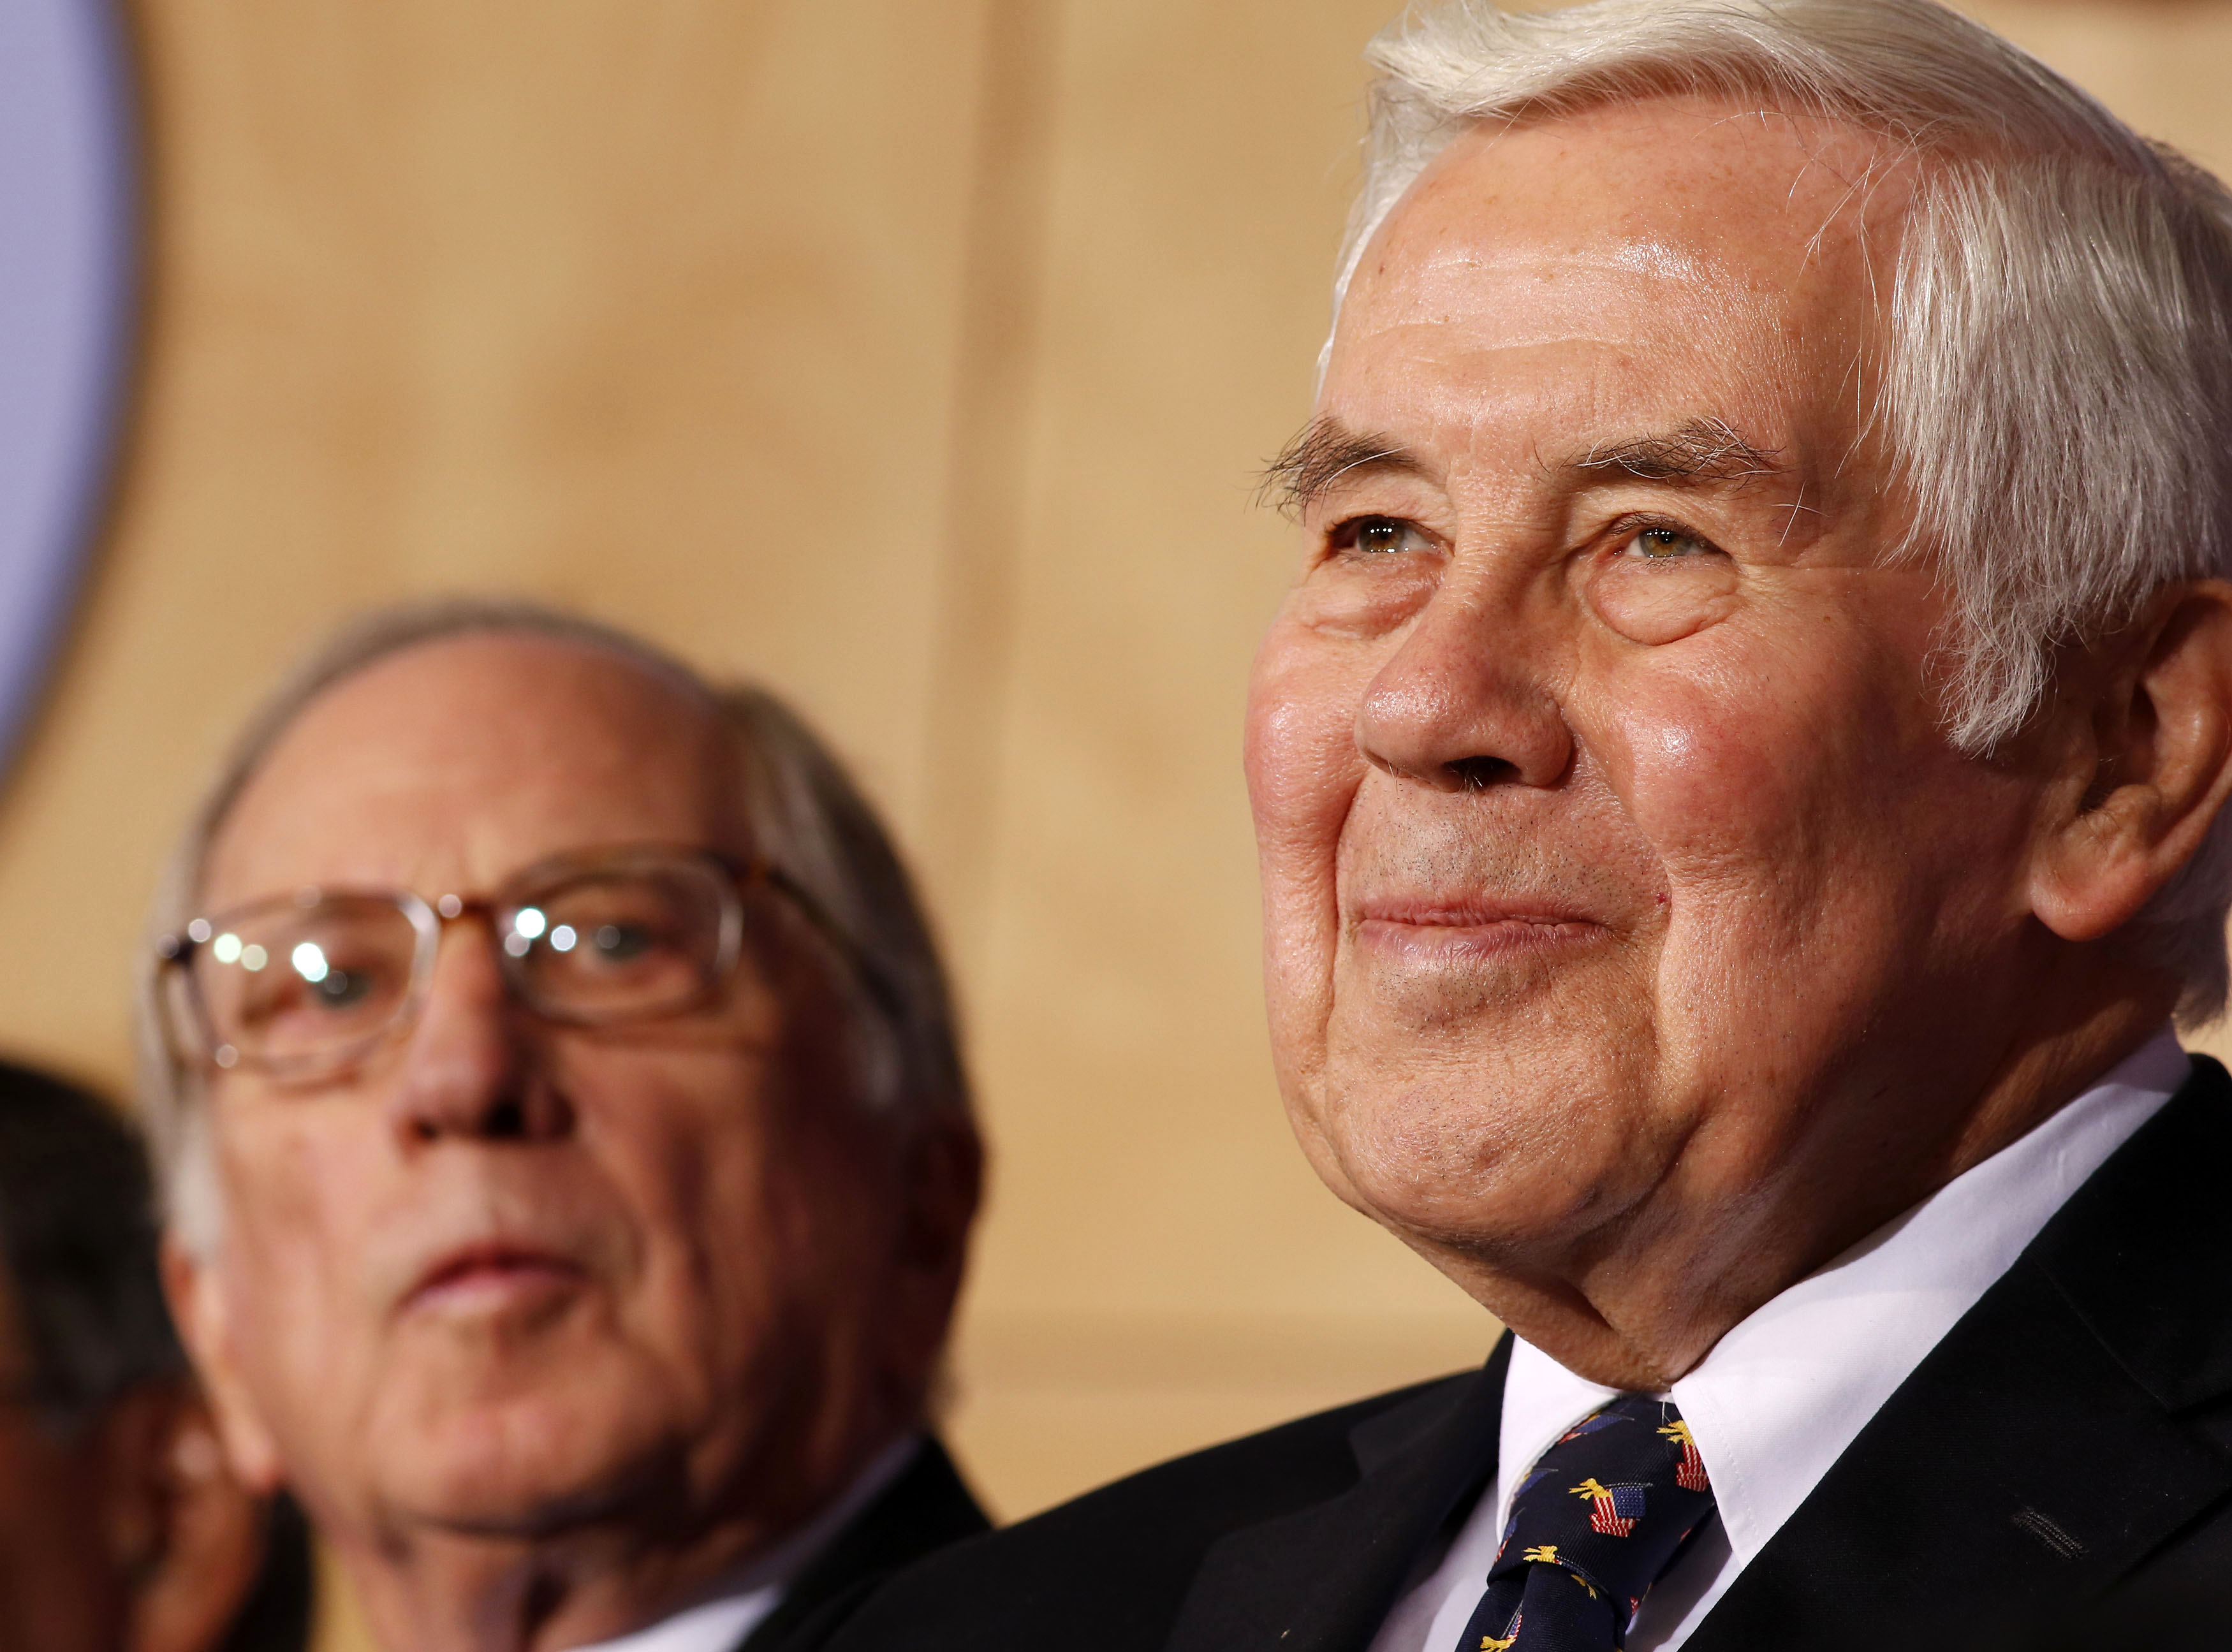 U.S. Senator Richard Lugar (R) joins Co-chairman and chief executive officer of the Nuclear Threat Initiative, Sam Nunn at the National Defense University in Washington, on December 3, 2012.